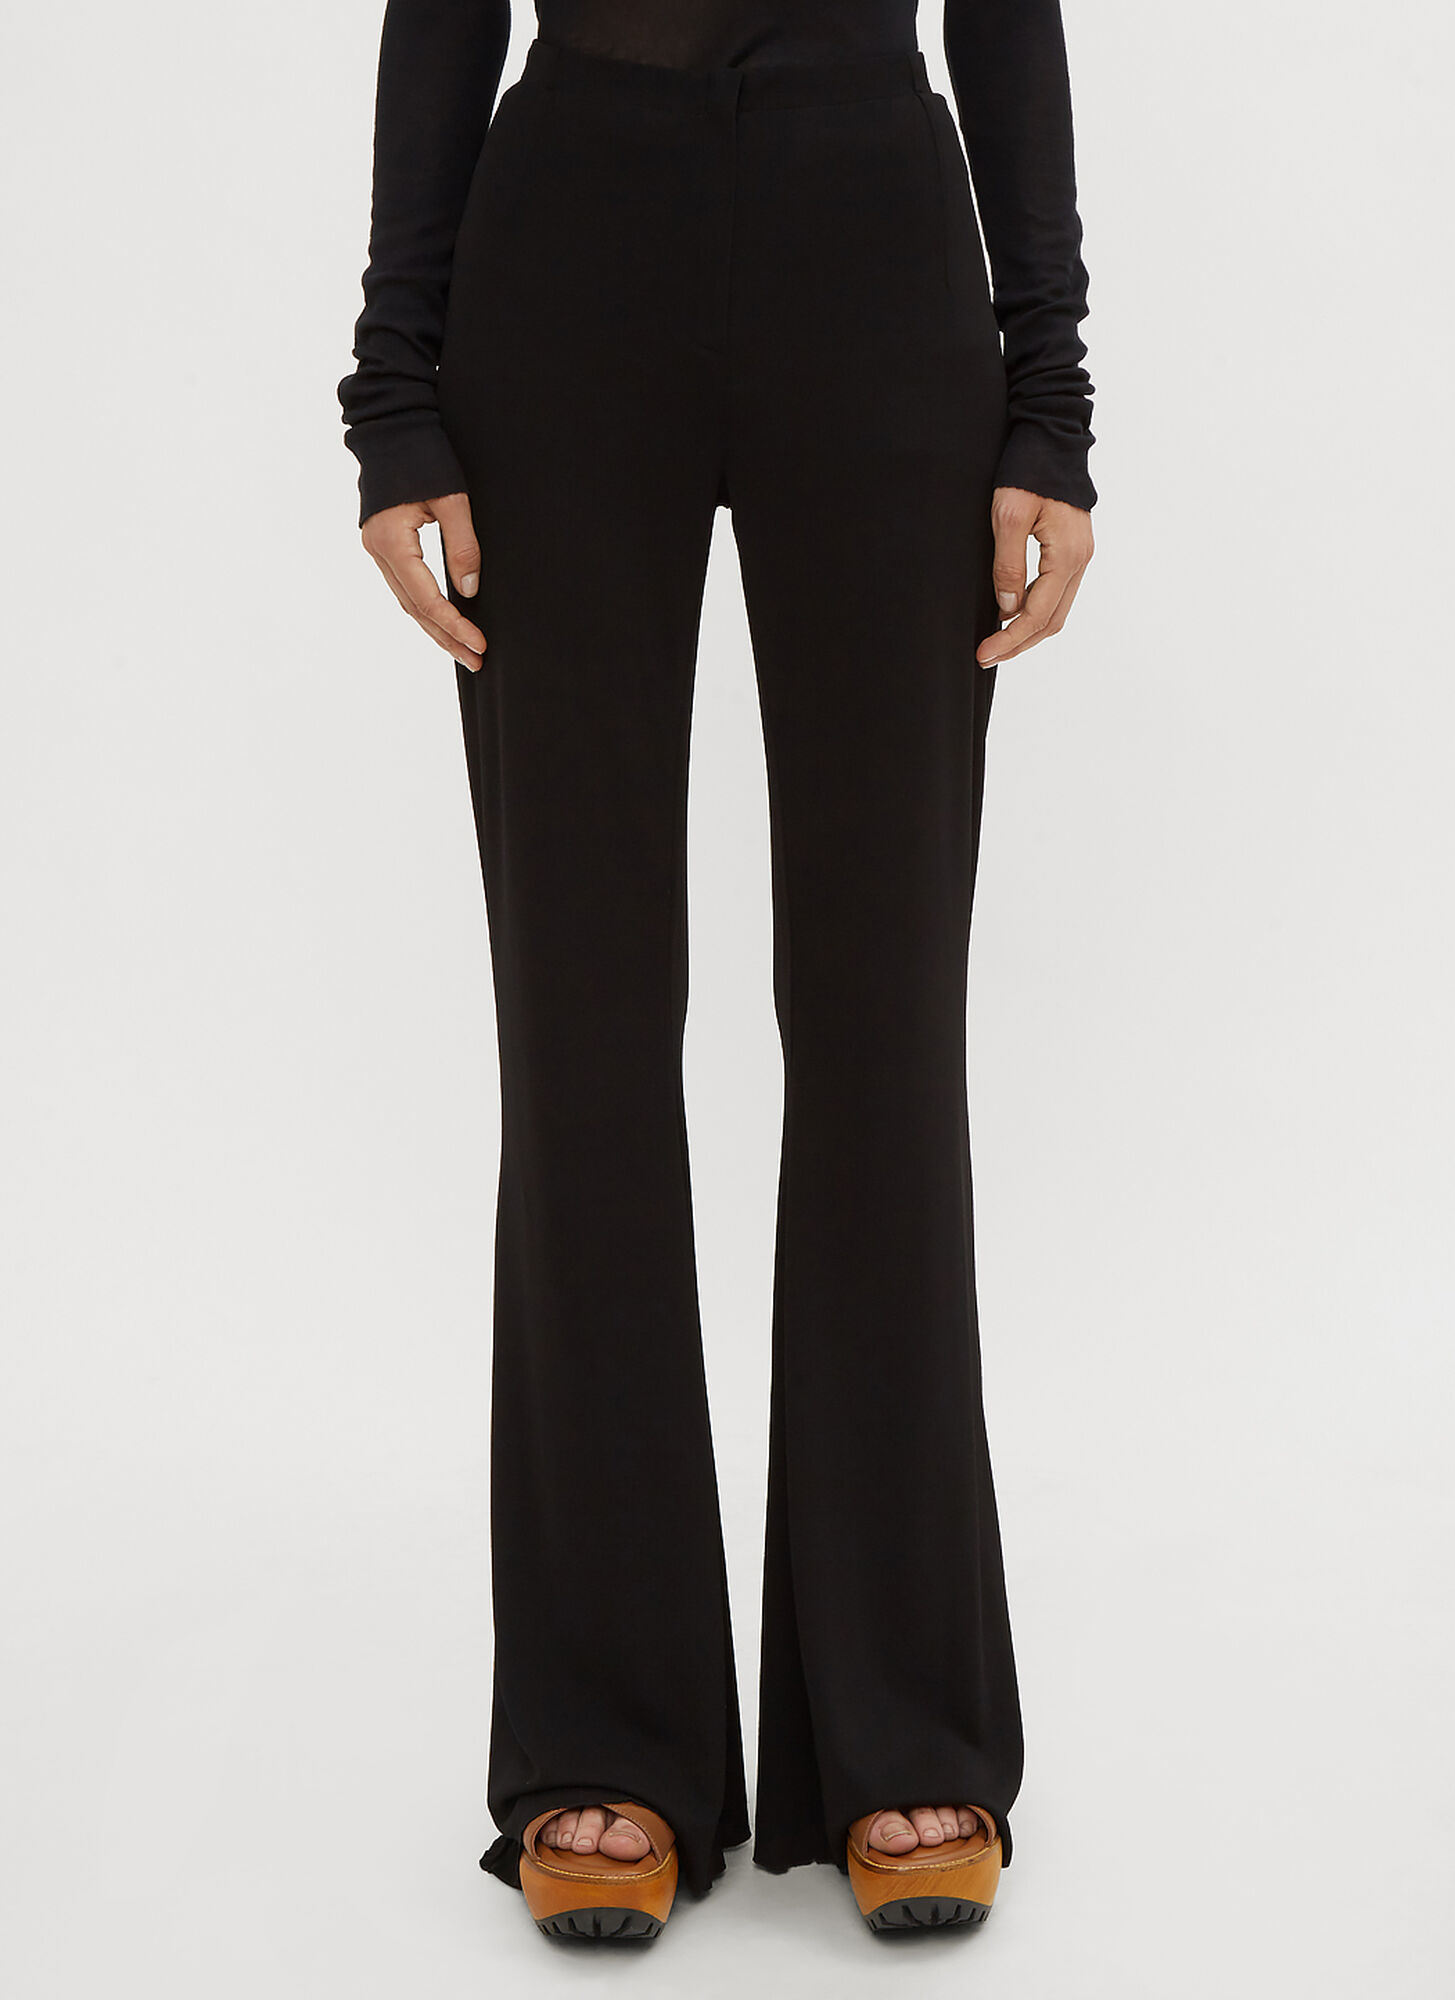 Marni Flared Jersey Pants in Black